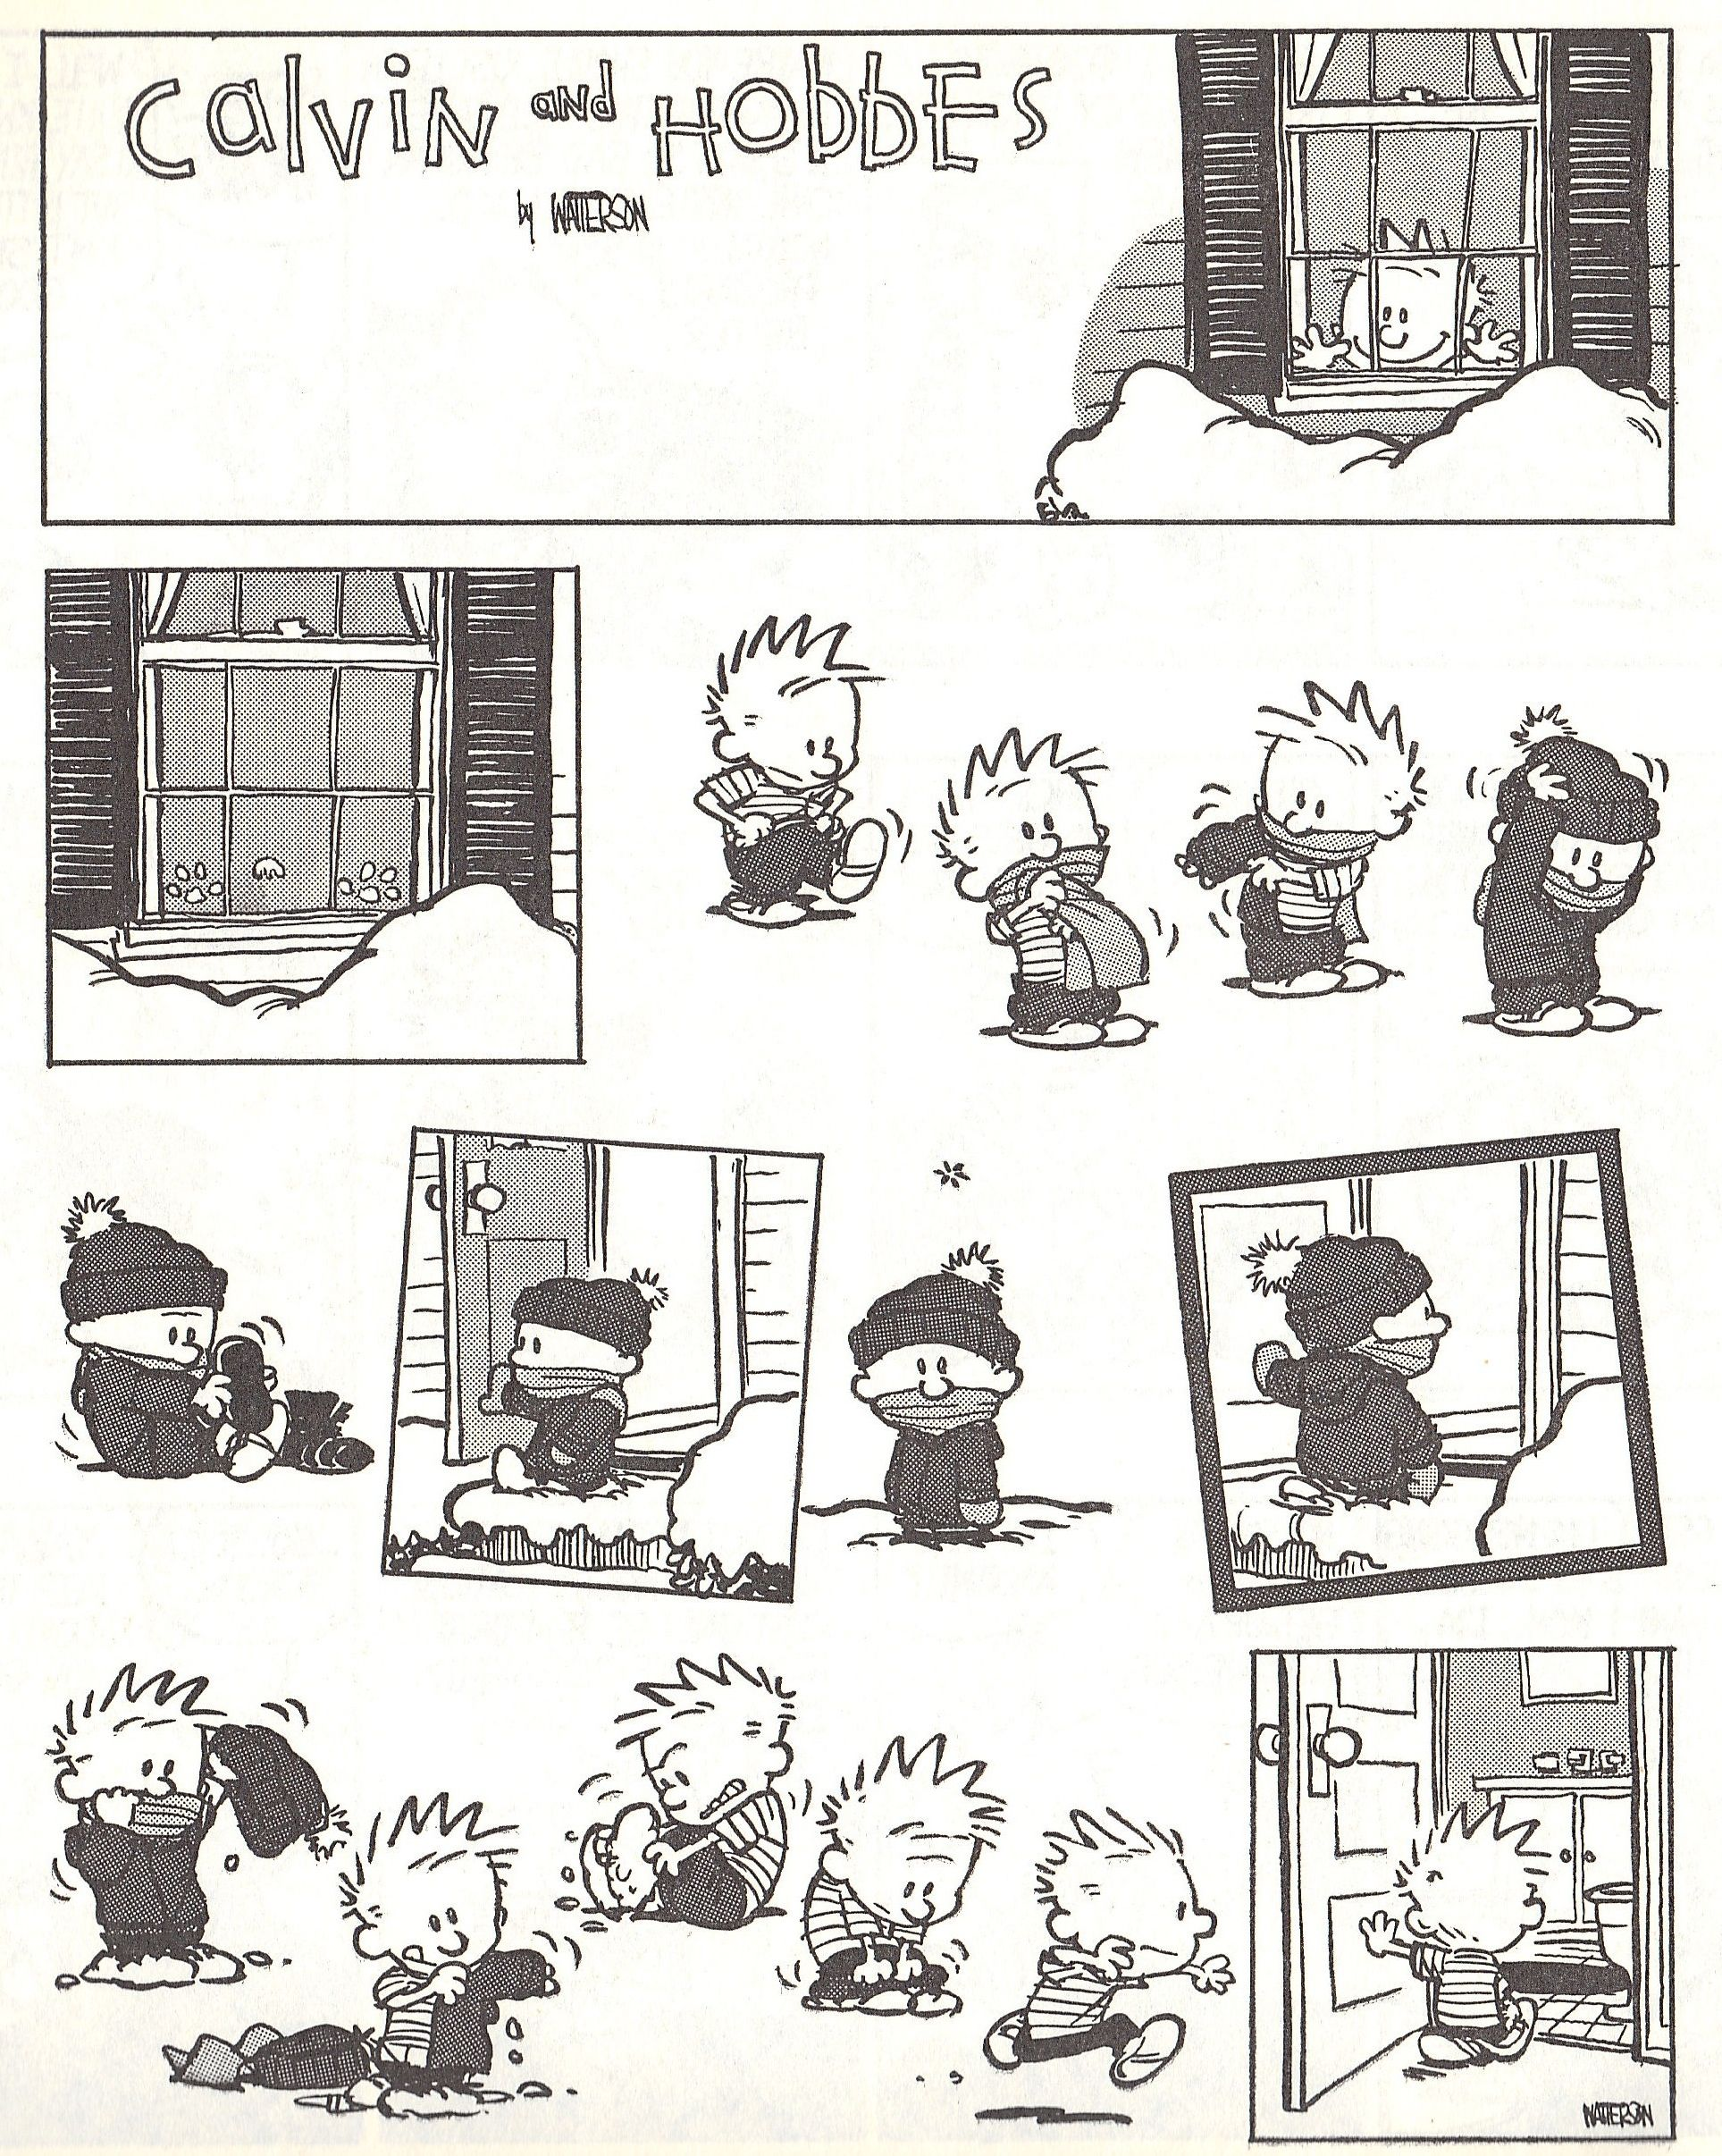 Calvin & Hobbes cartoon [awww] : psychology - reddit.com